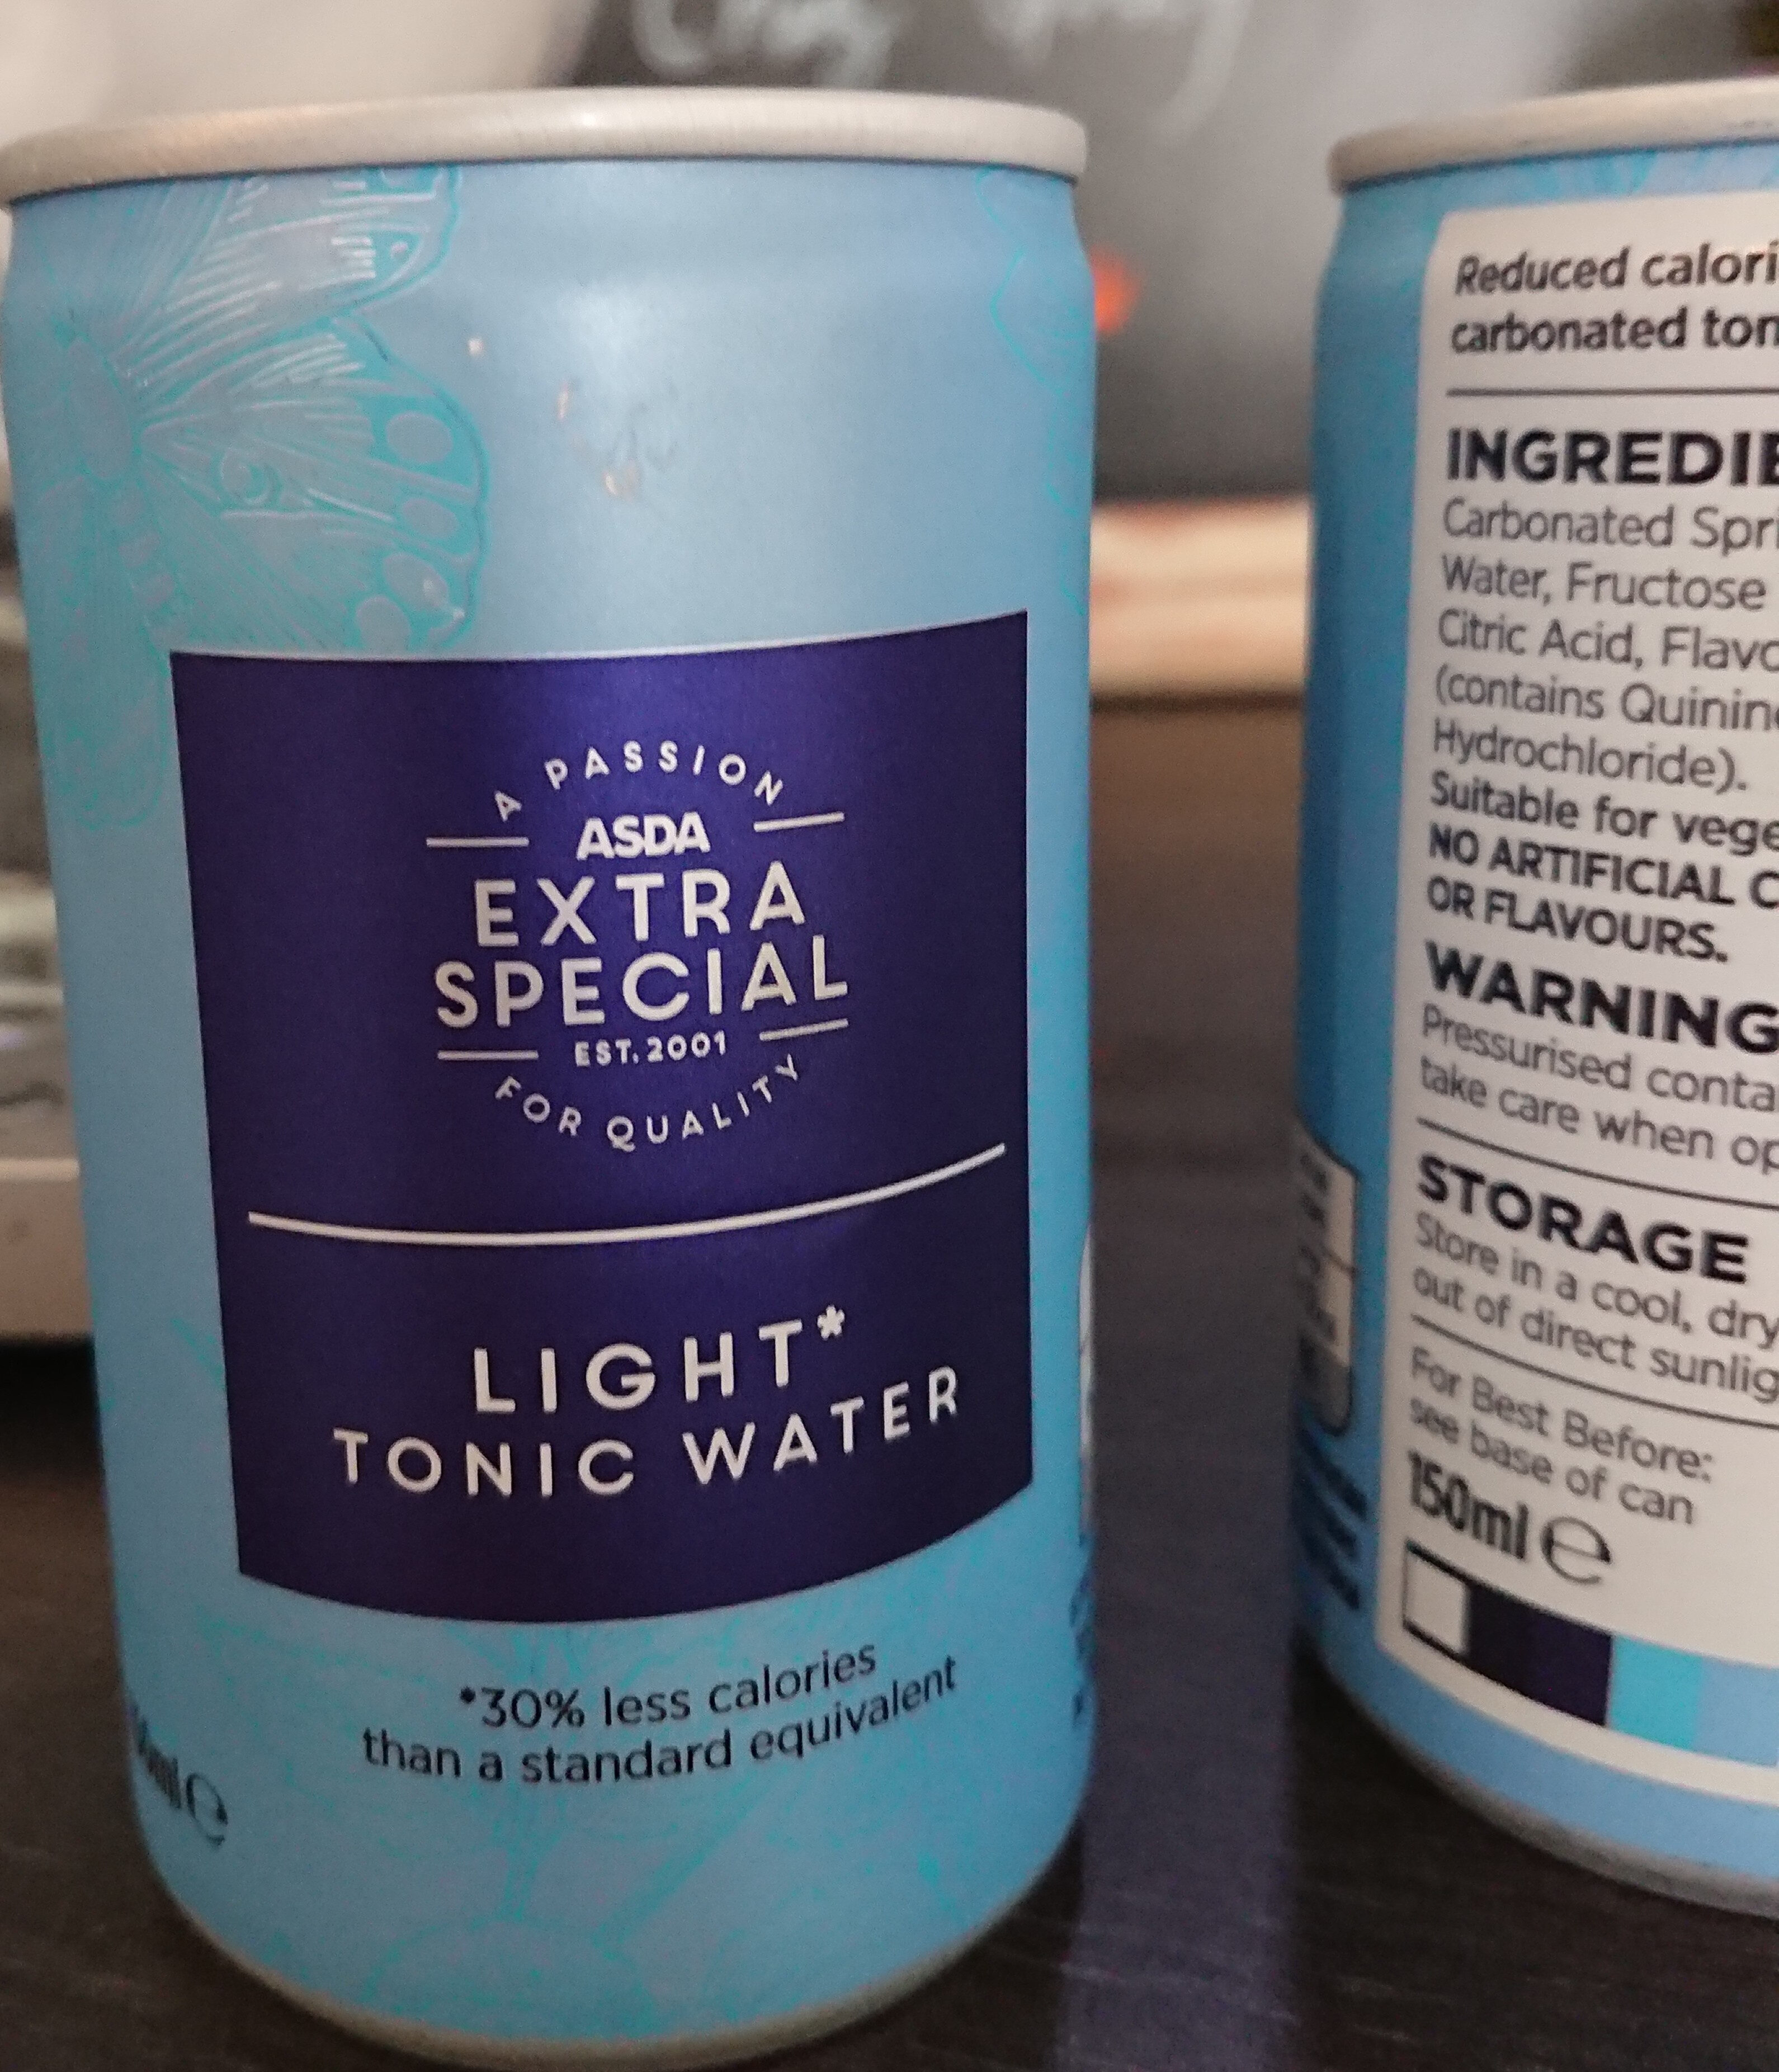 Extra Special Light Tonic Water - Product